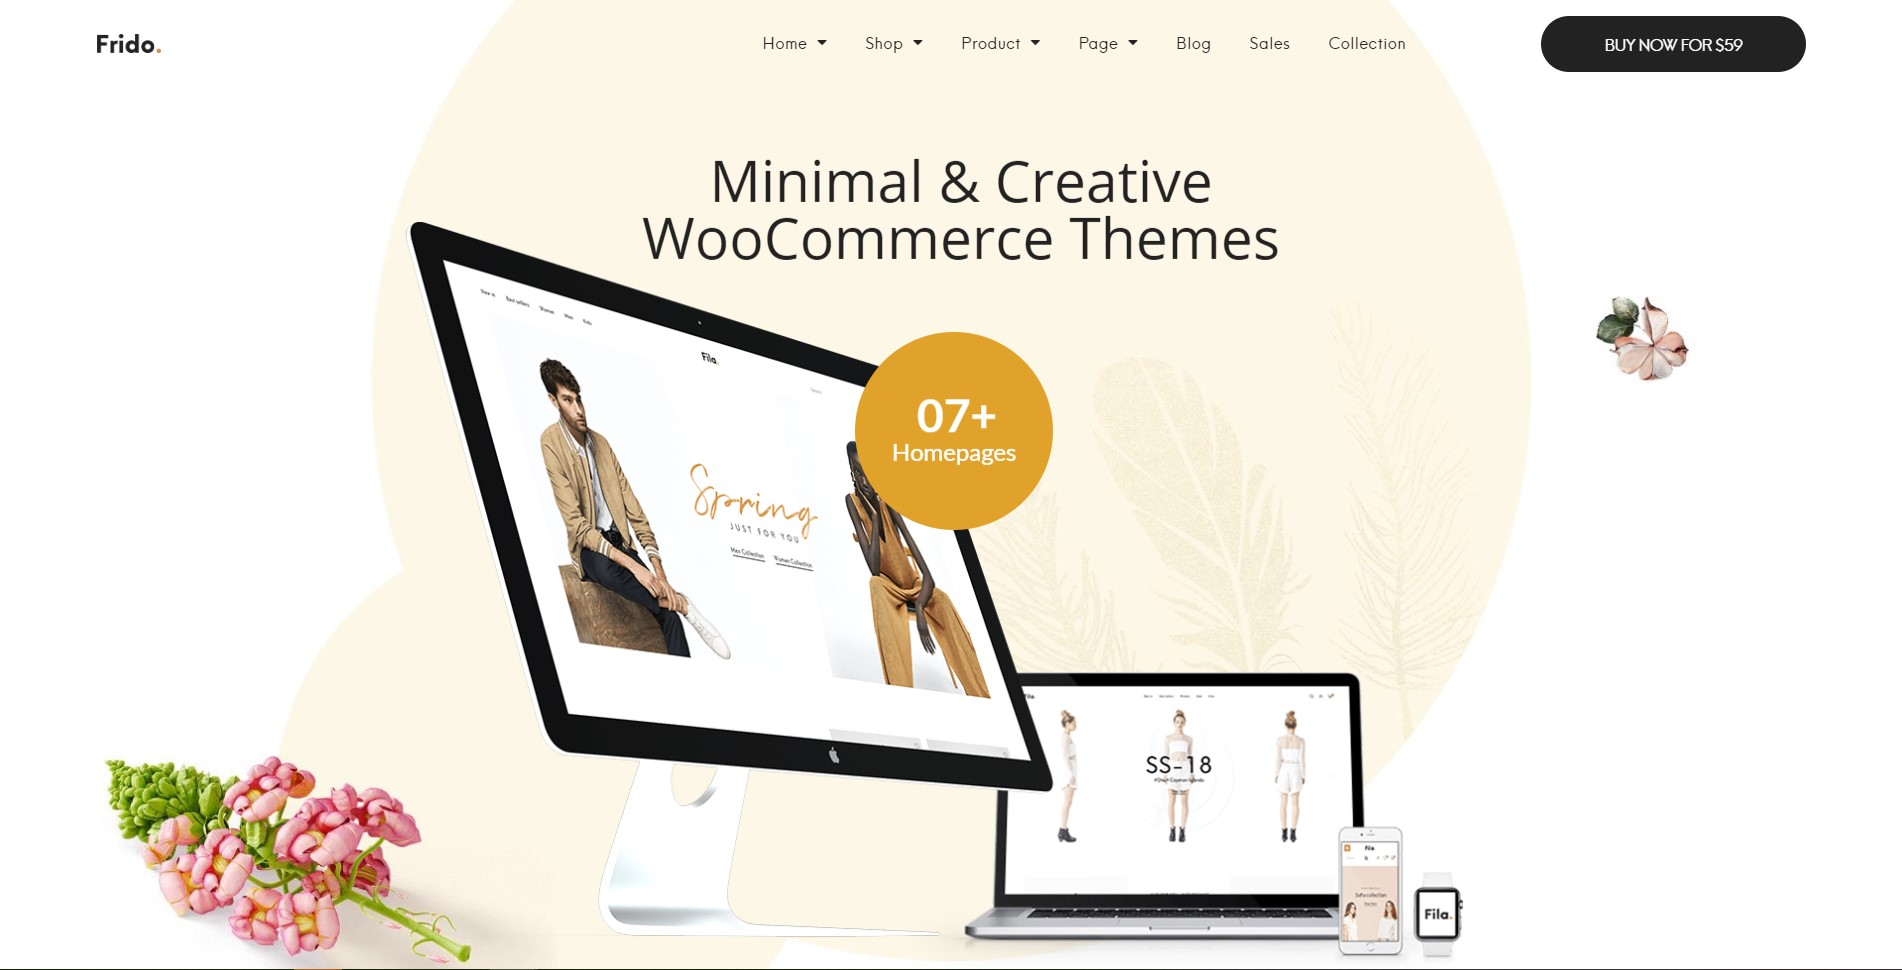 Frido - Minimal & Creative WooCommerce WordPress Theme